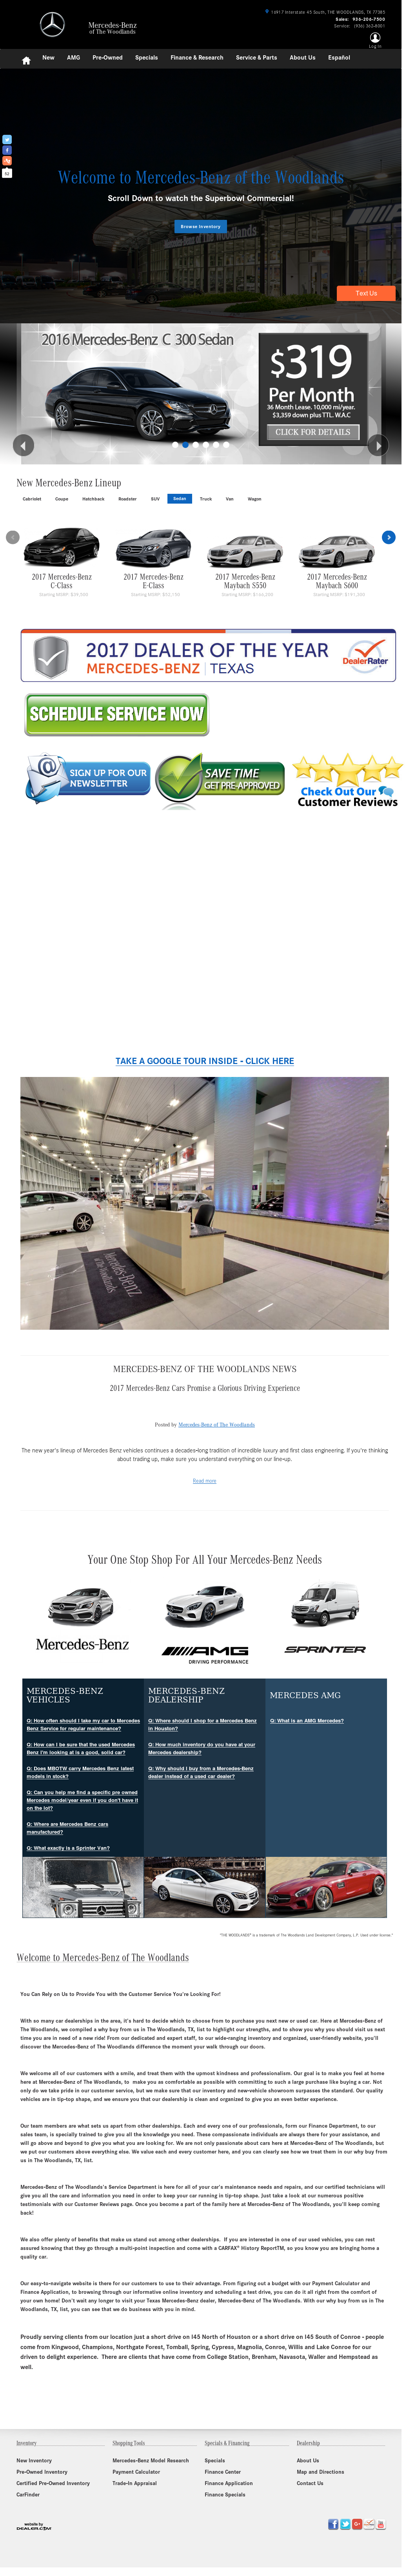 Mercedes-benz Of The Woodlands Competitors, Revenue and Employees